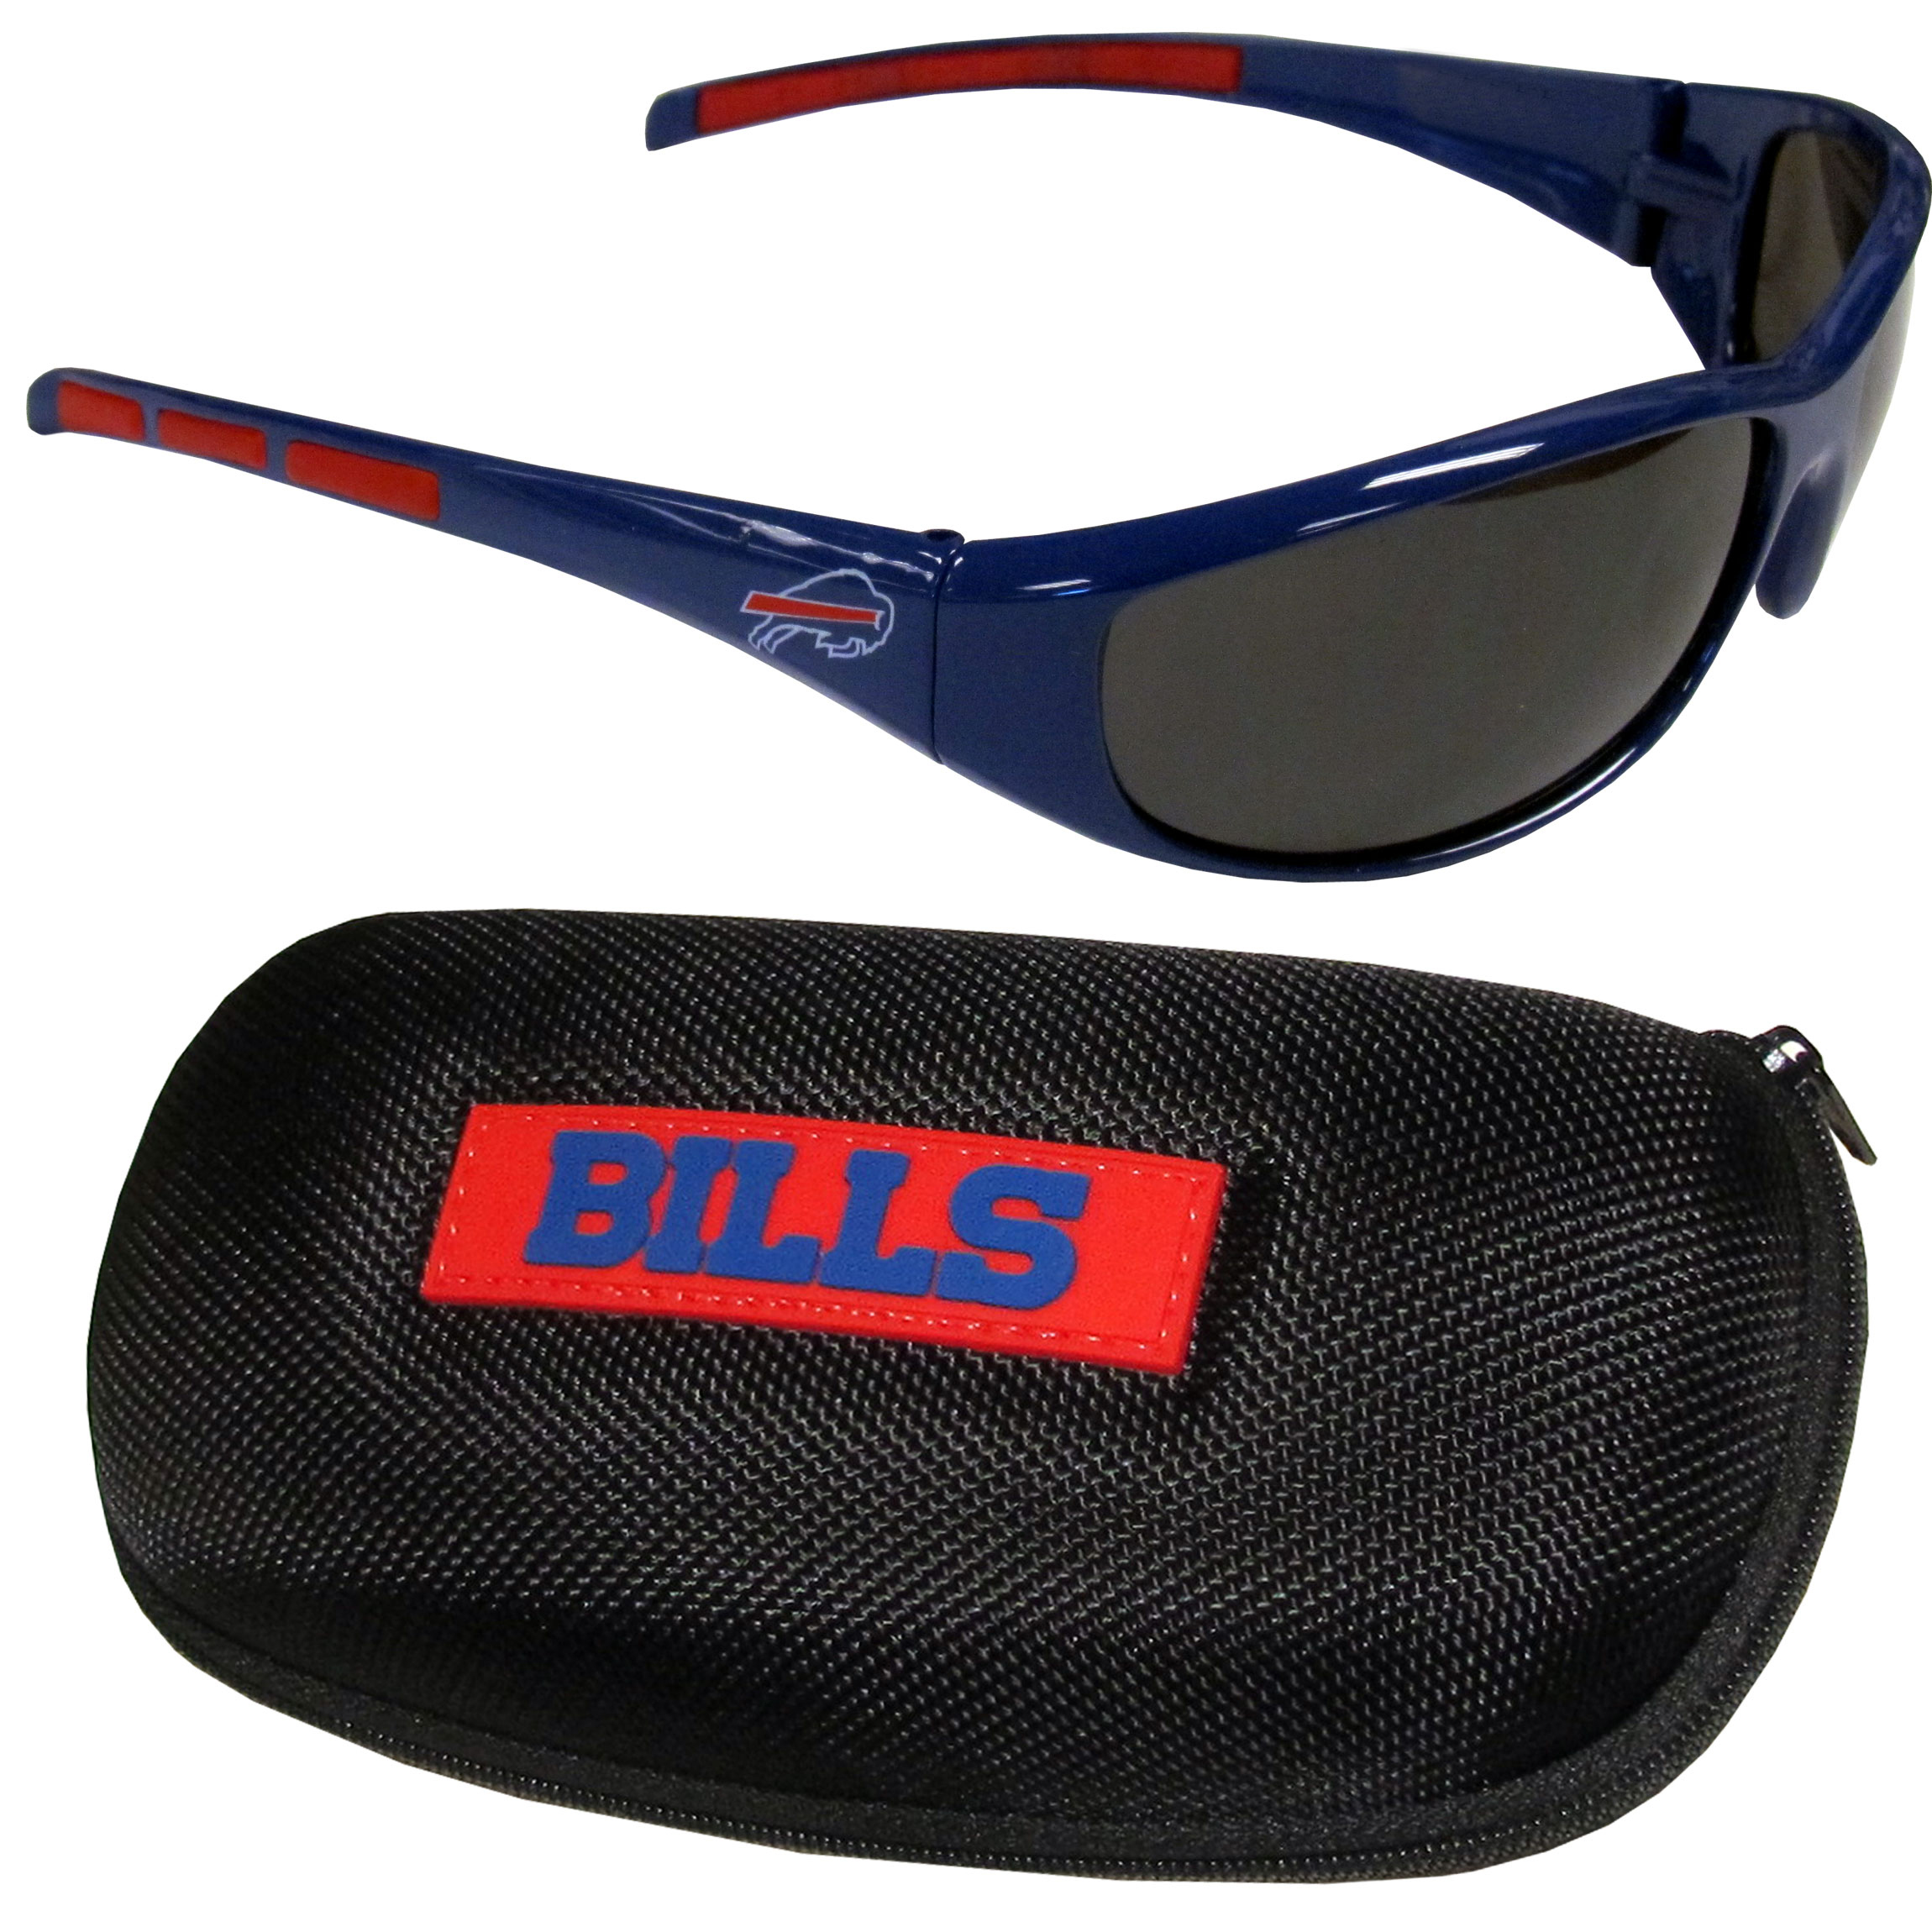 Buffalo Bills Wrap Sunglass and Case Set - This great set includes a high quality pair of Buffalo Bills wrap sunglasses and hard carrying case.